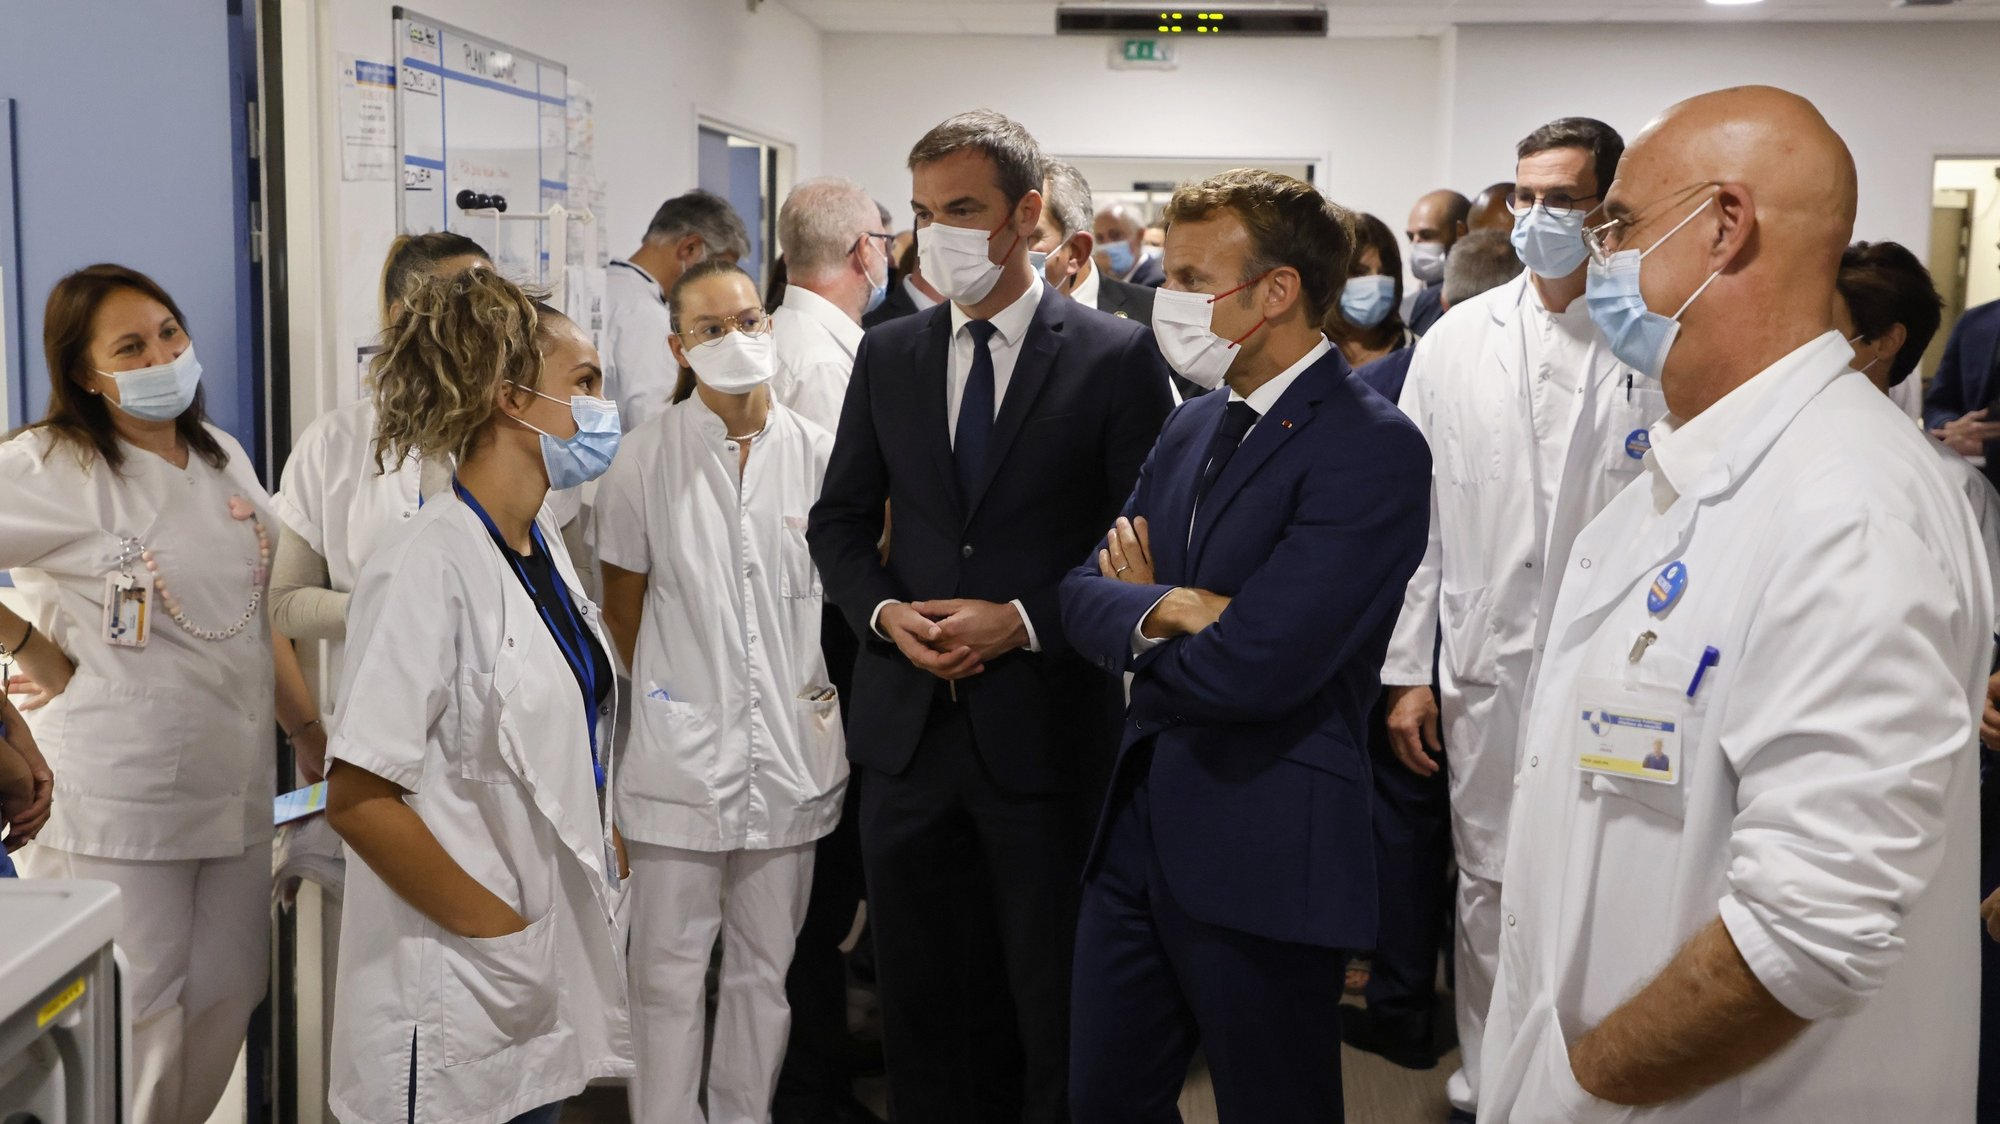 epa09443127 French President Emmanuel Macron (3R) and French Health Minister Olivier Veran (C) speak with health employees during his visit at La Timone hospital as part of his three-day visit in Marseille, southern France, 02 September 2021.  EPA/LUDOVIC MARIN / POOL  MAXPPP OUT